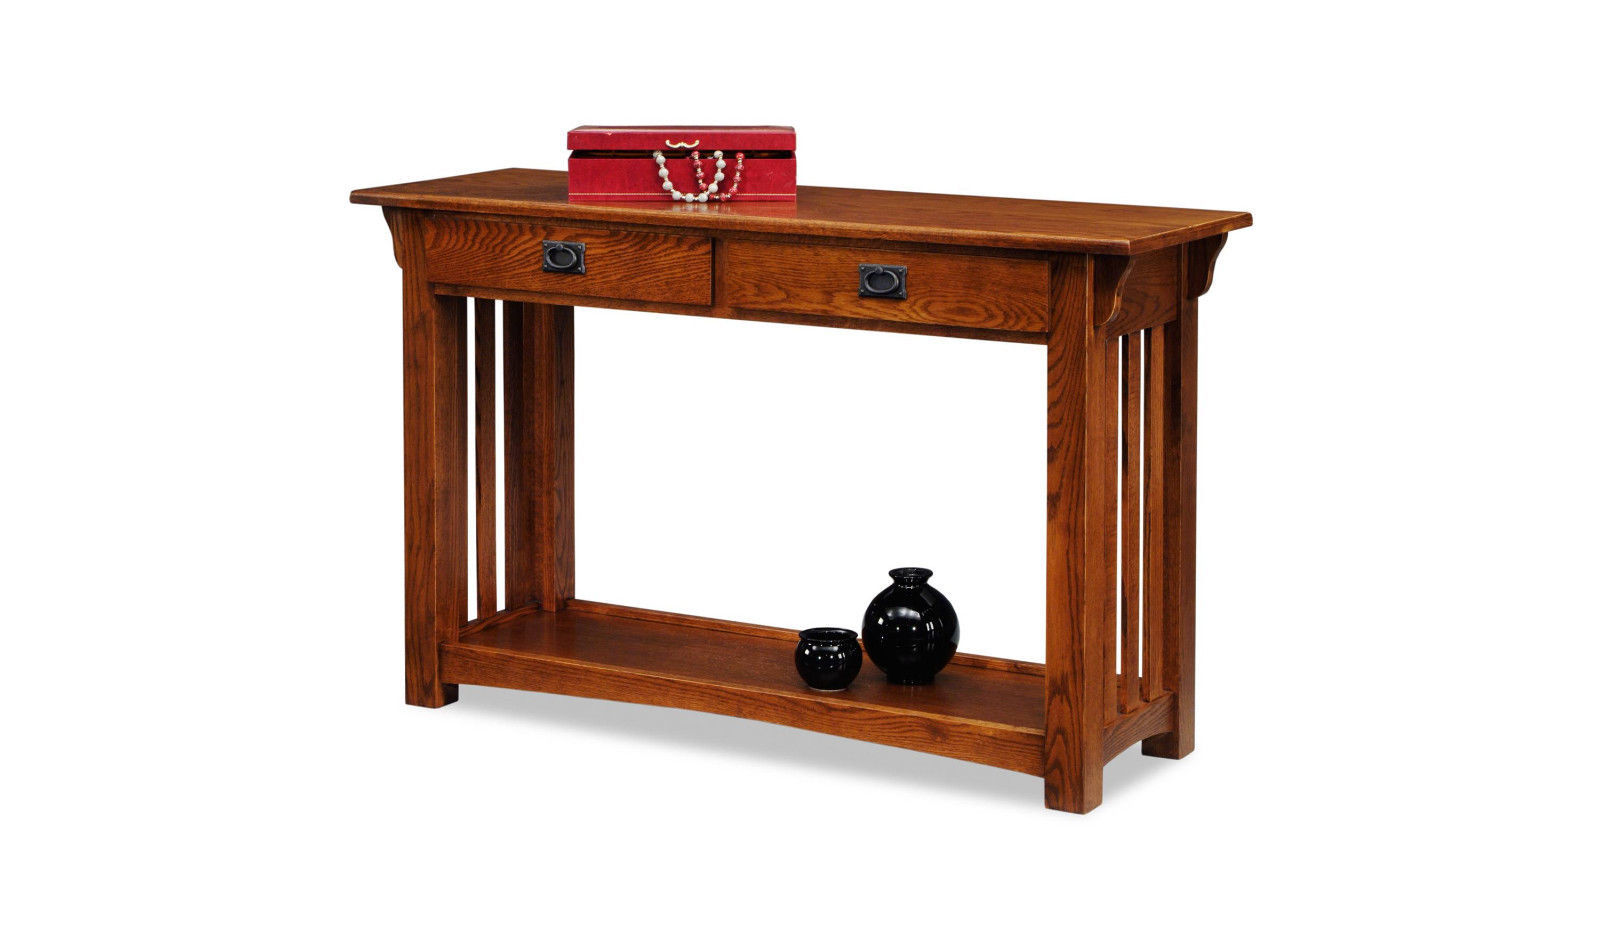 finest mission sofa table image-Fresh Mission sofa Table Online